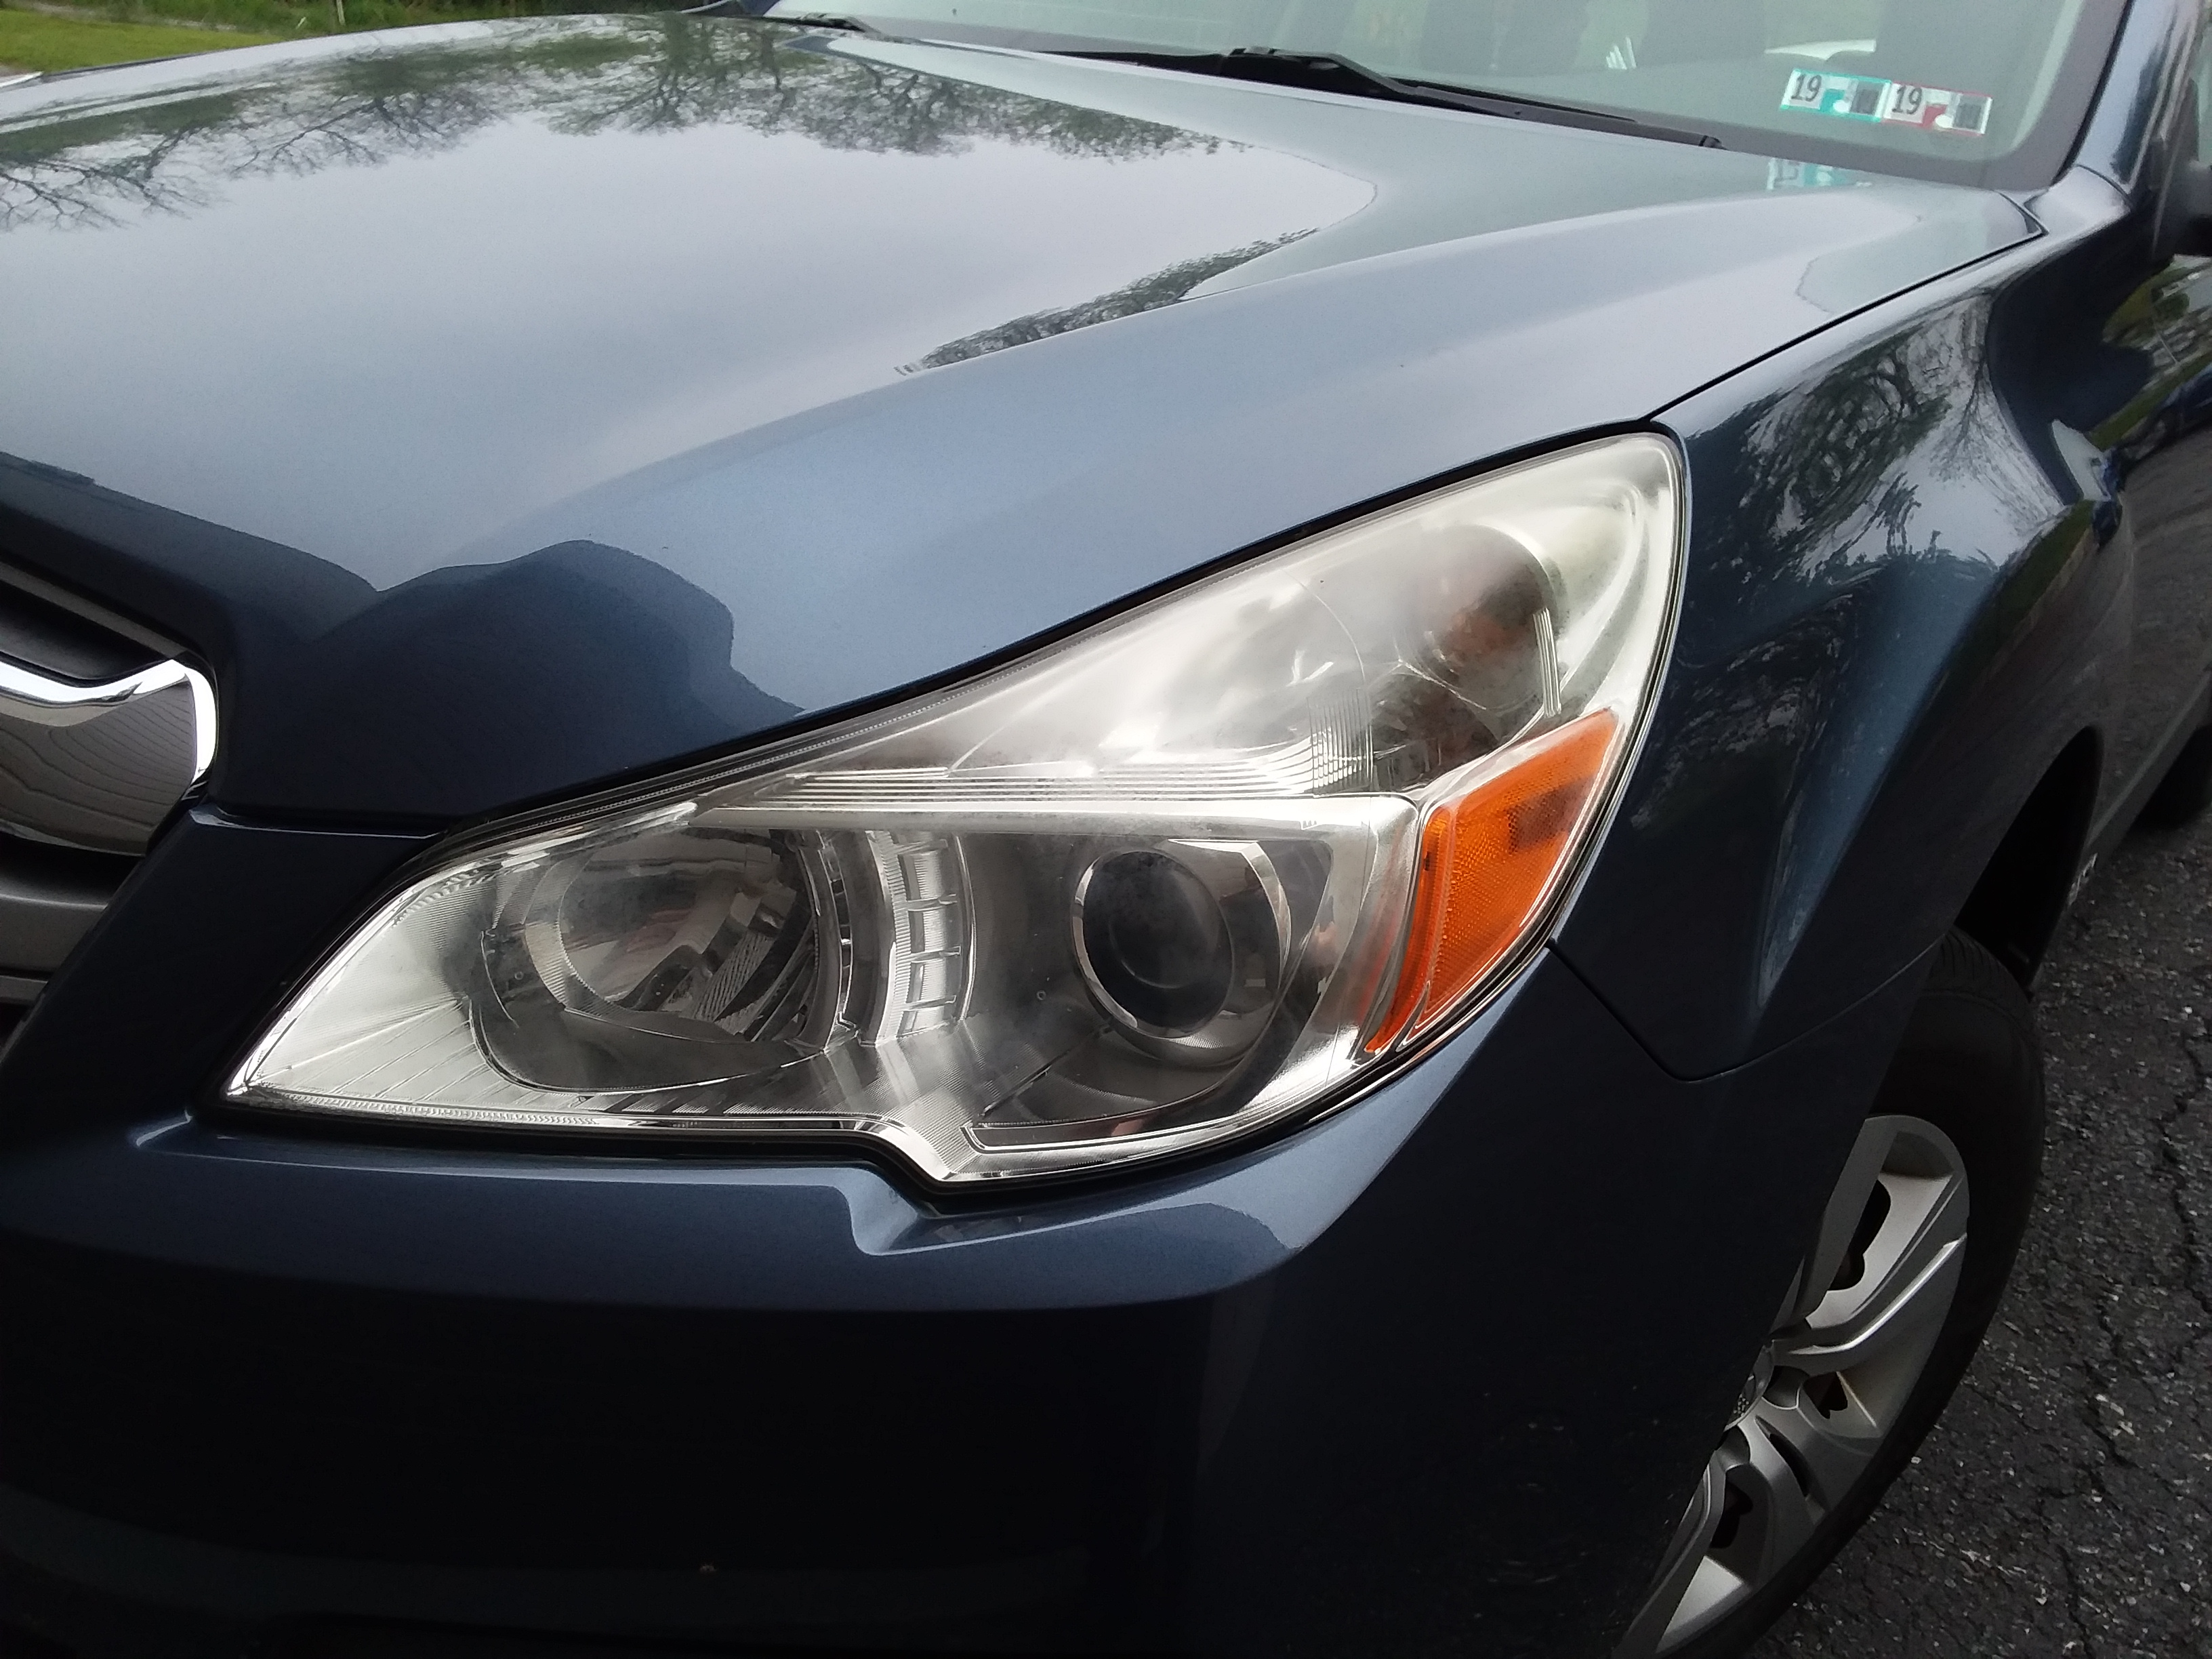 2013 Subaru Outback Faded Headlight